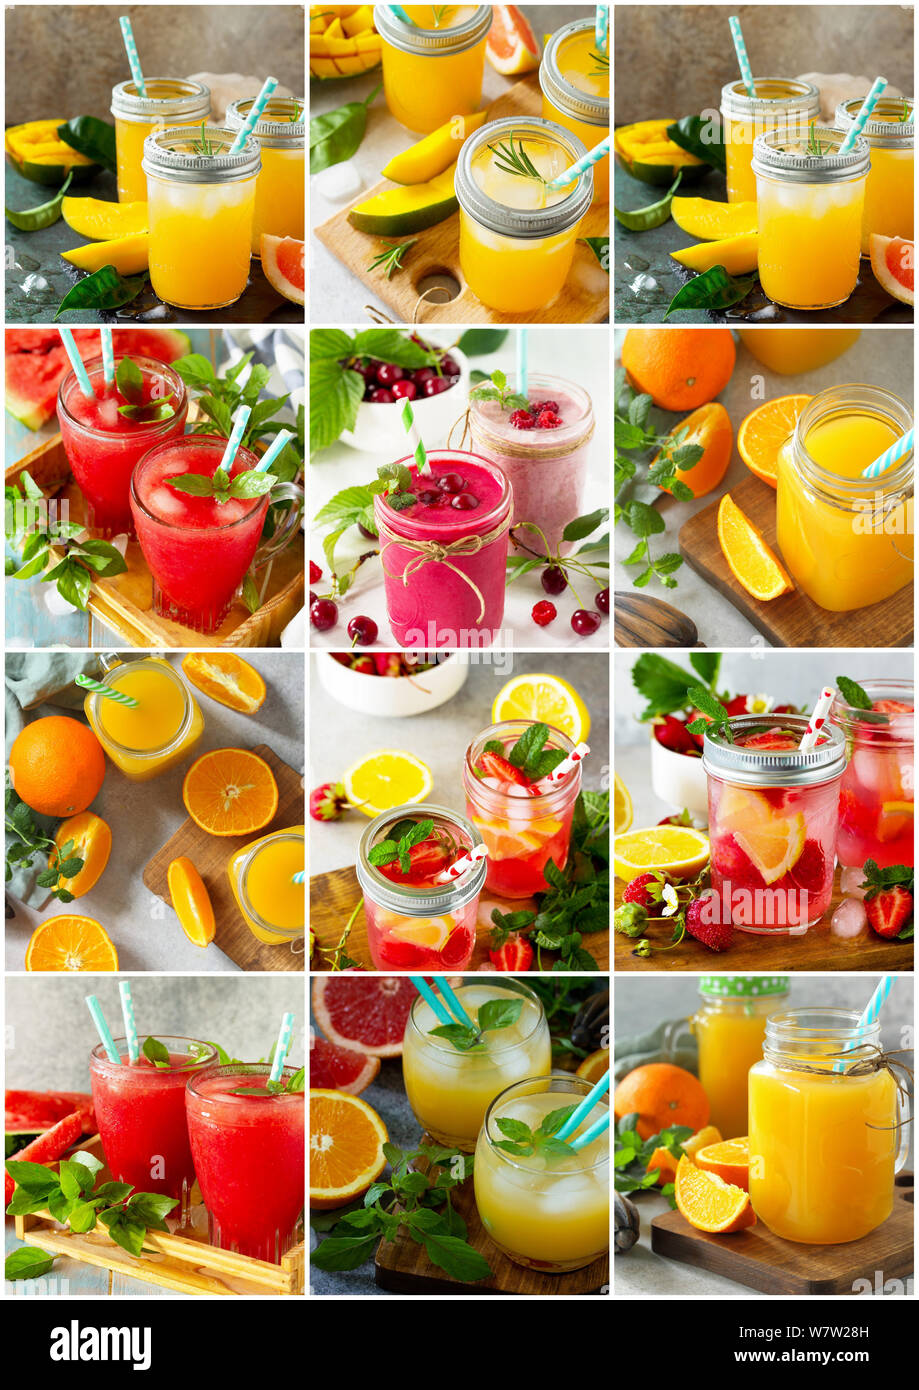 Background collage drinks. An assortment of juice drinks and smoothies on a stone table. Stock Photo